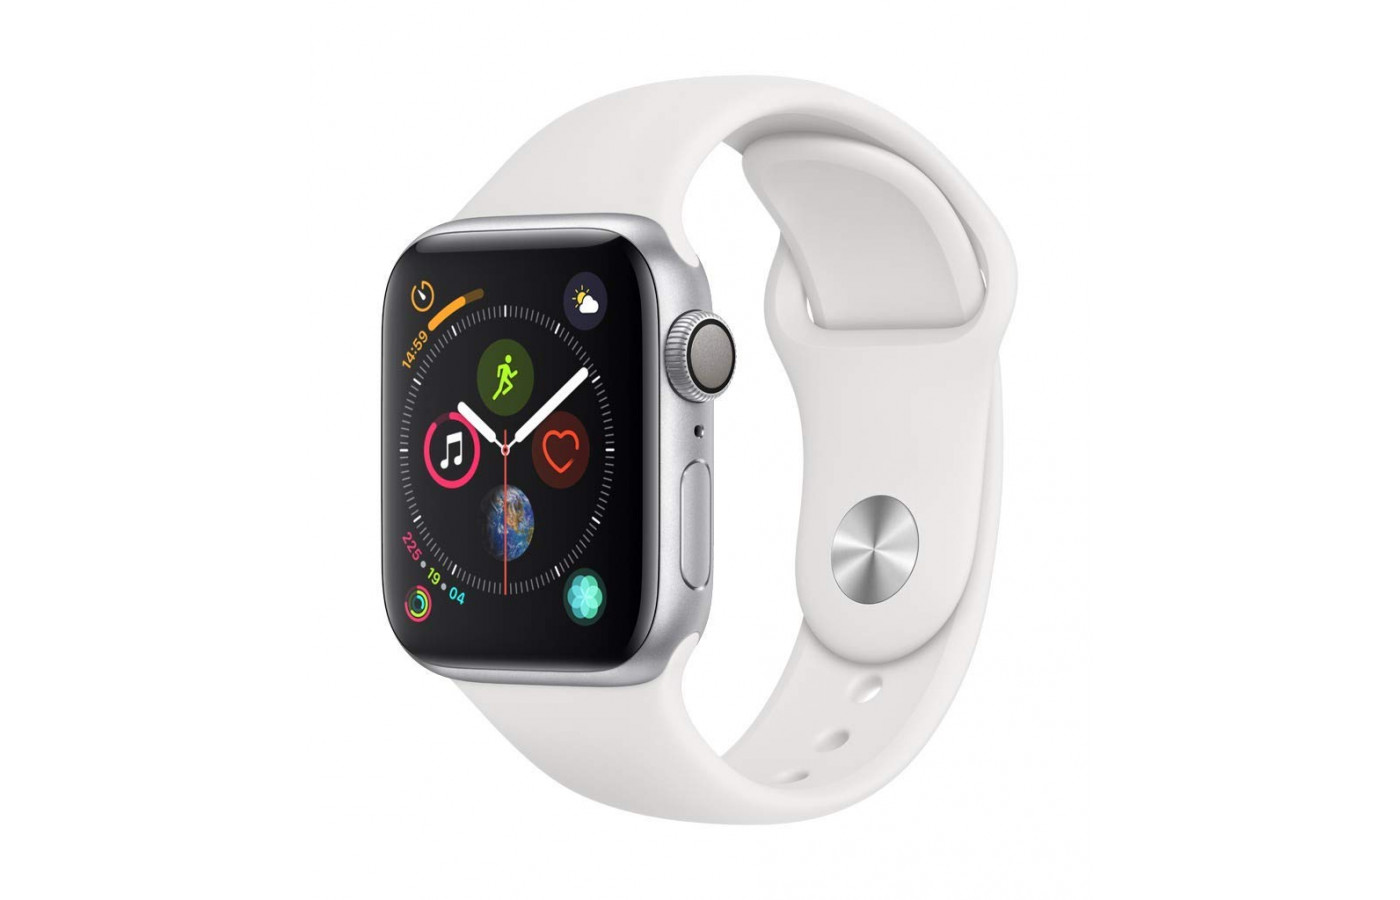 apple watch white side